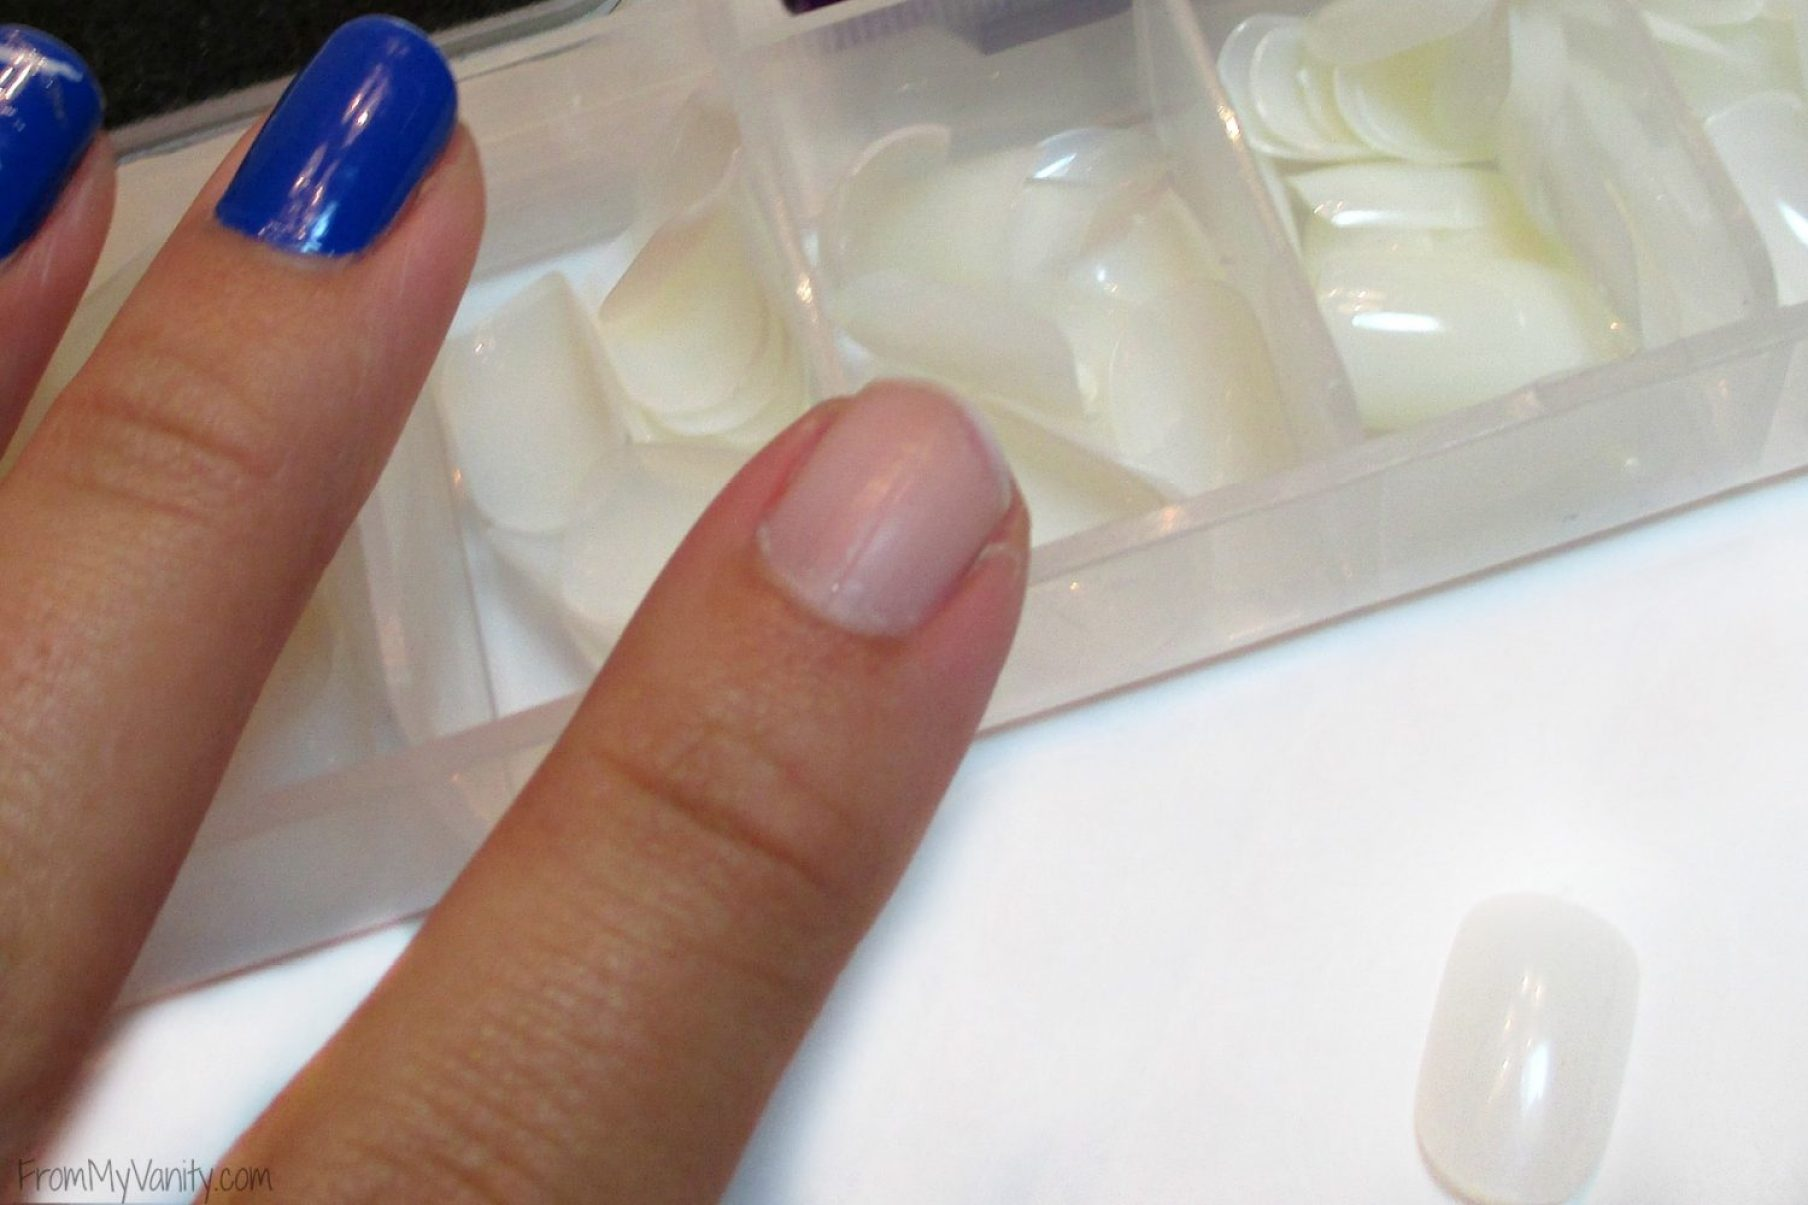 How to Fix a Broken Nail // Step 2: Find Nail Size // FromMyVanity.com